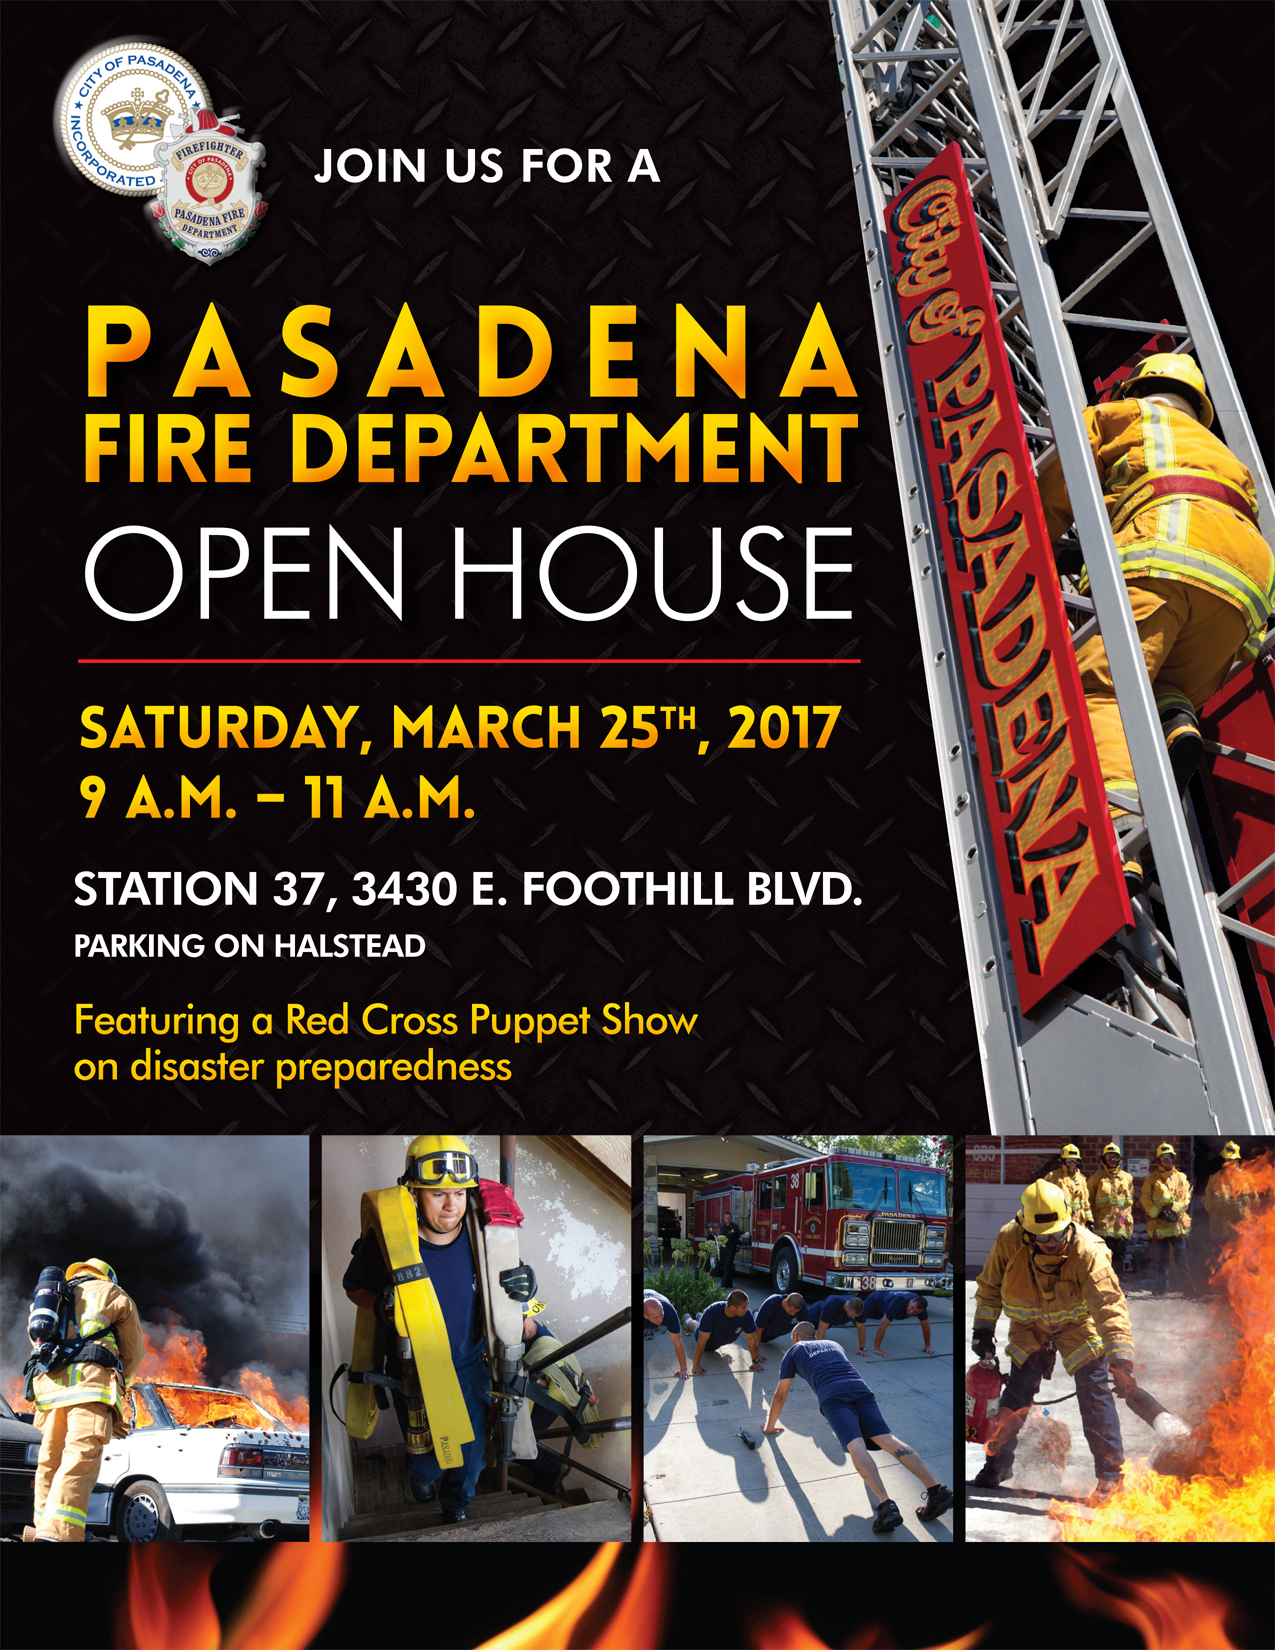 Flyer Announcing Pasadena Fire Department Station 37 Open House Saturday March 25, 2017